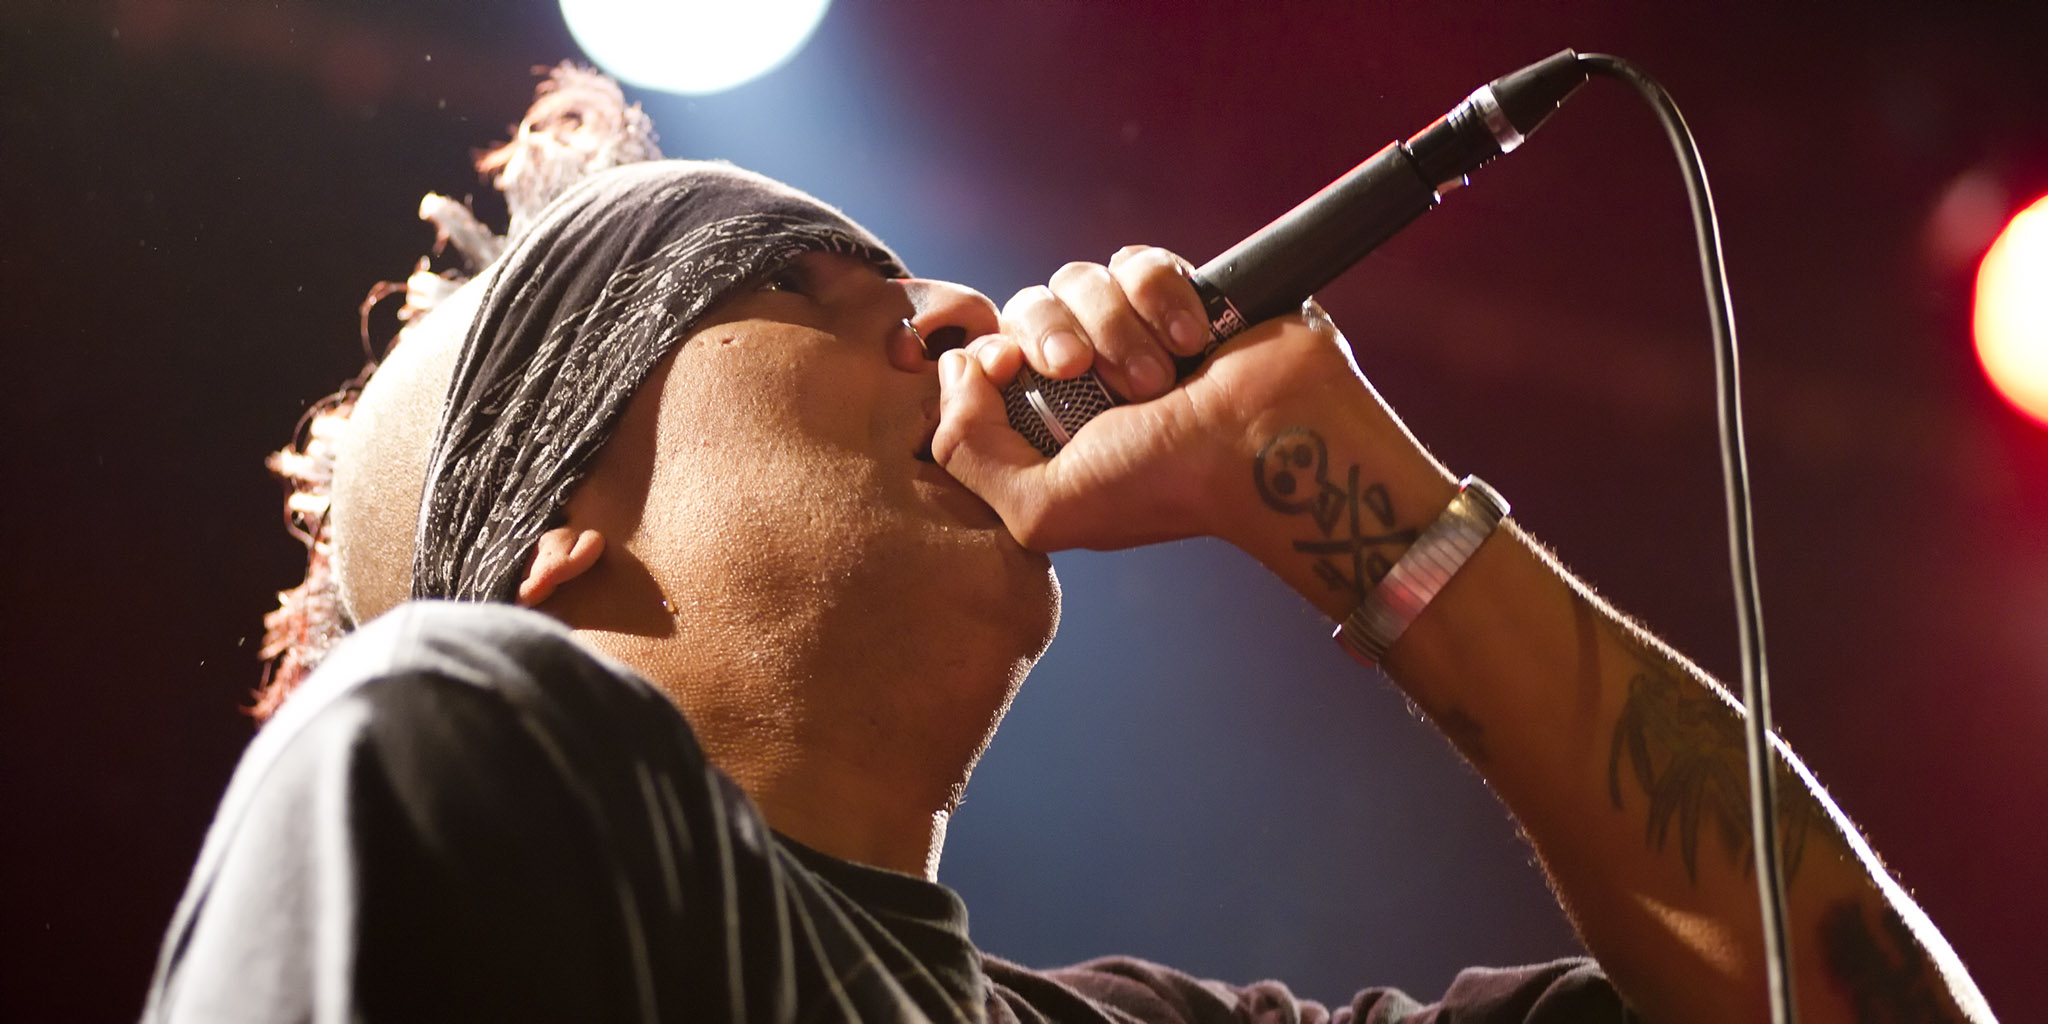 Hed PE, Tivoli De Helling, The Netherlands 21-3-1012